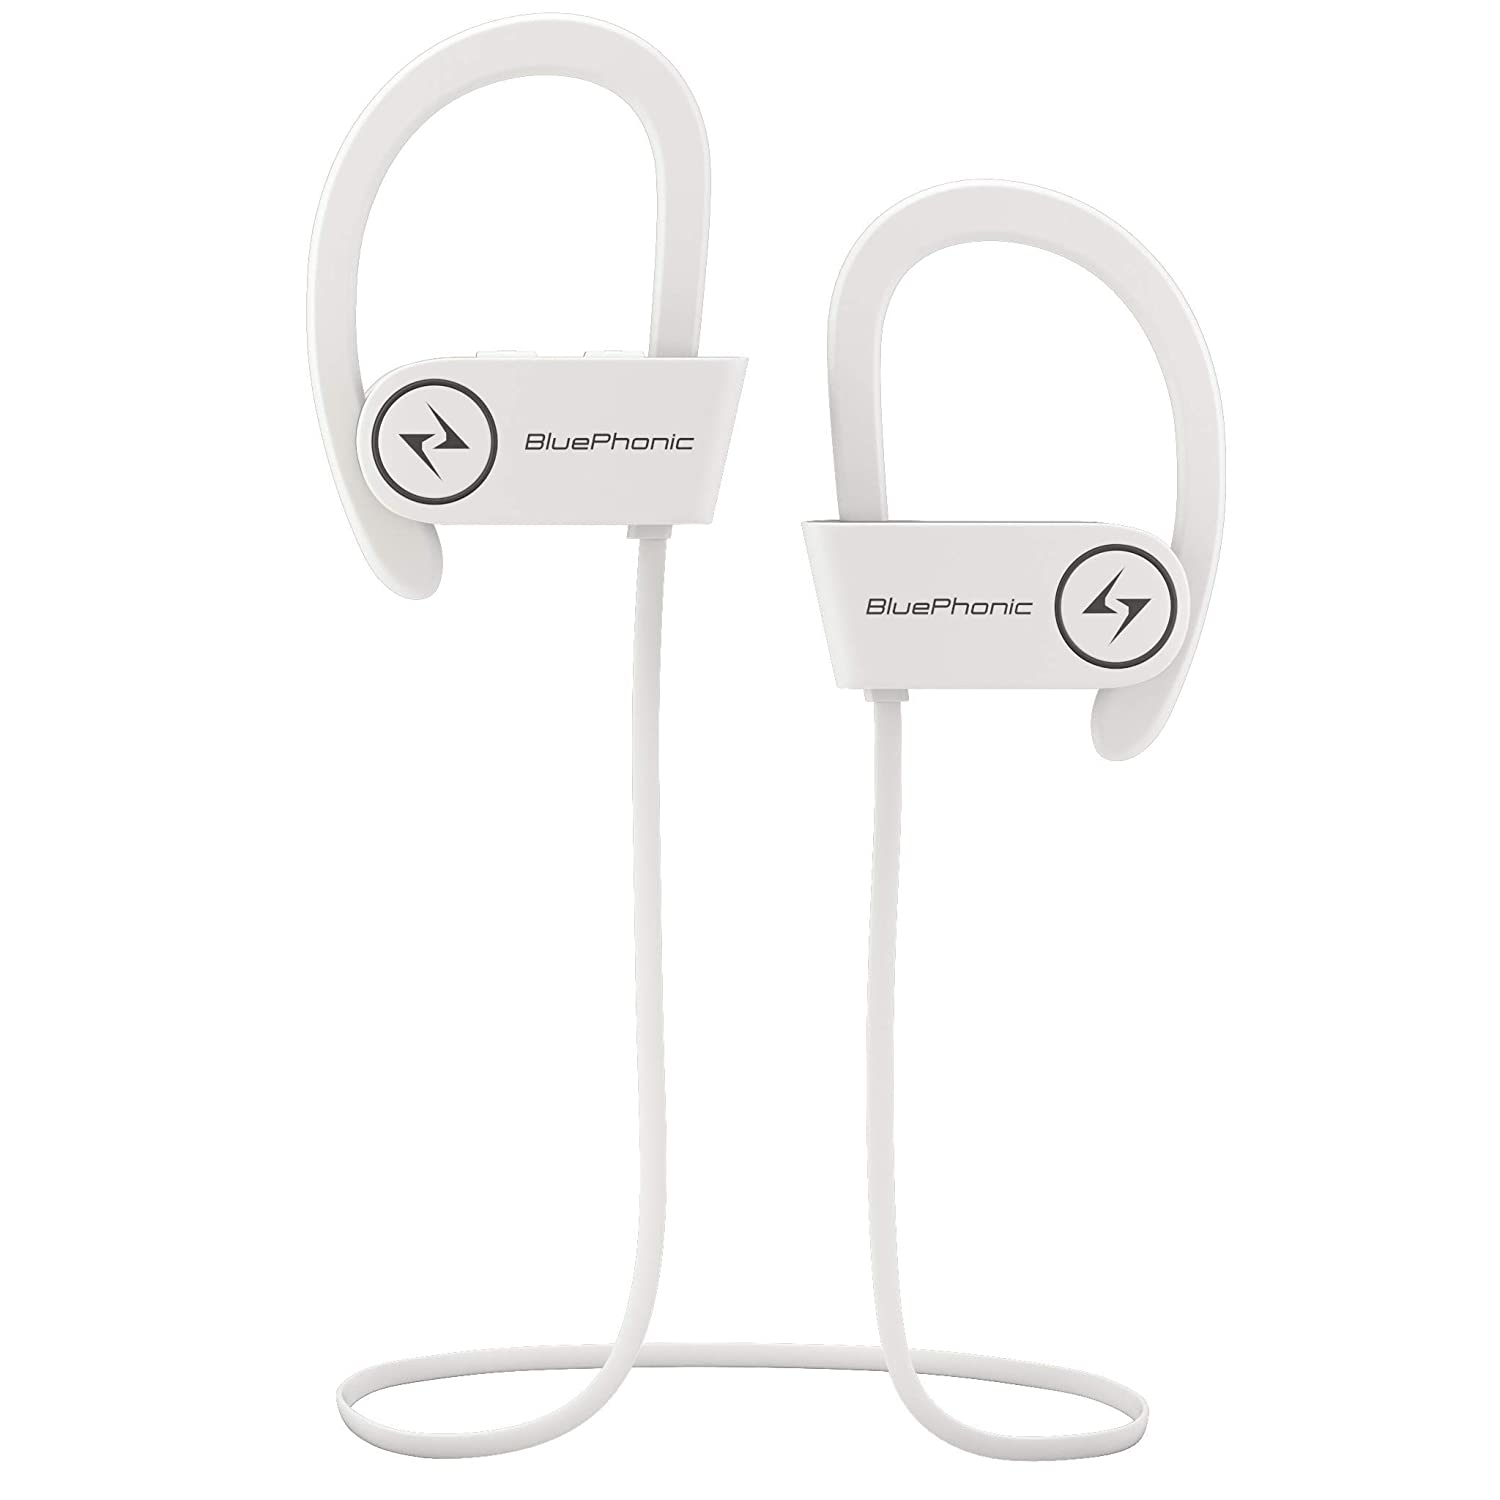 ... Headphones - Hd Beats Sound Quality - Sweat Proof Stable Fit in Ear  Workout Earbuds - Ergonomic Running Earphones - Noise Cancelling Microphone  (White) 5fb3be787